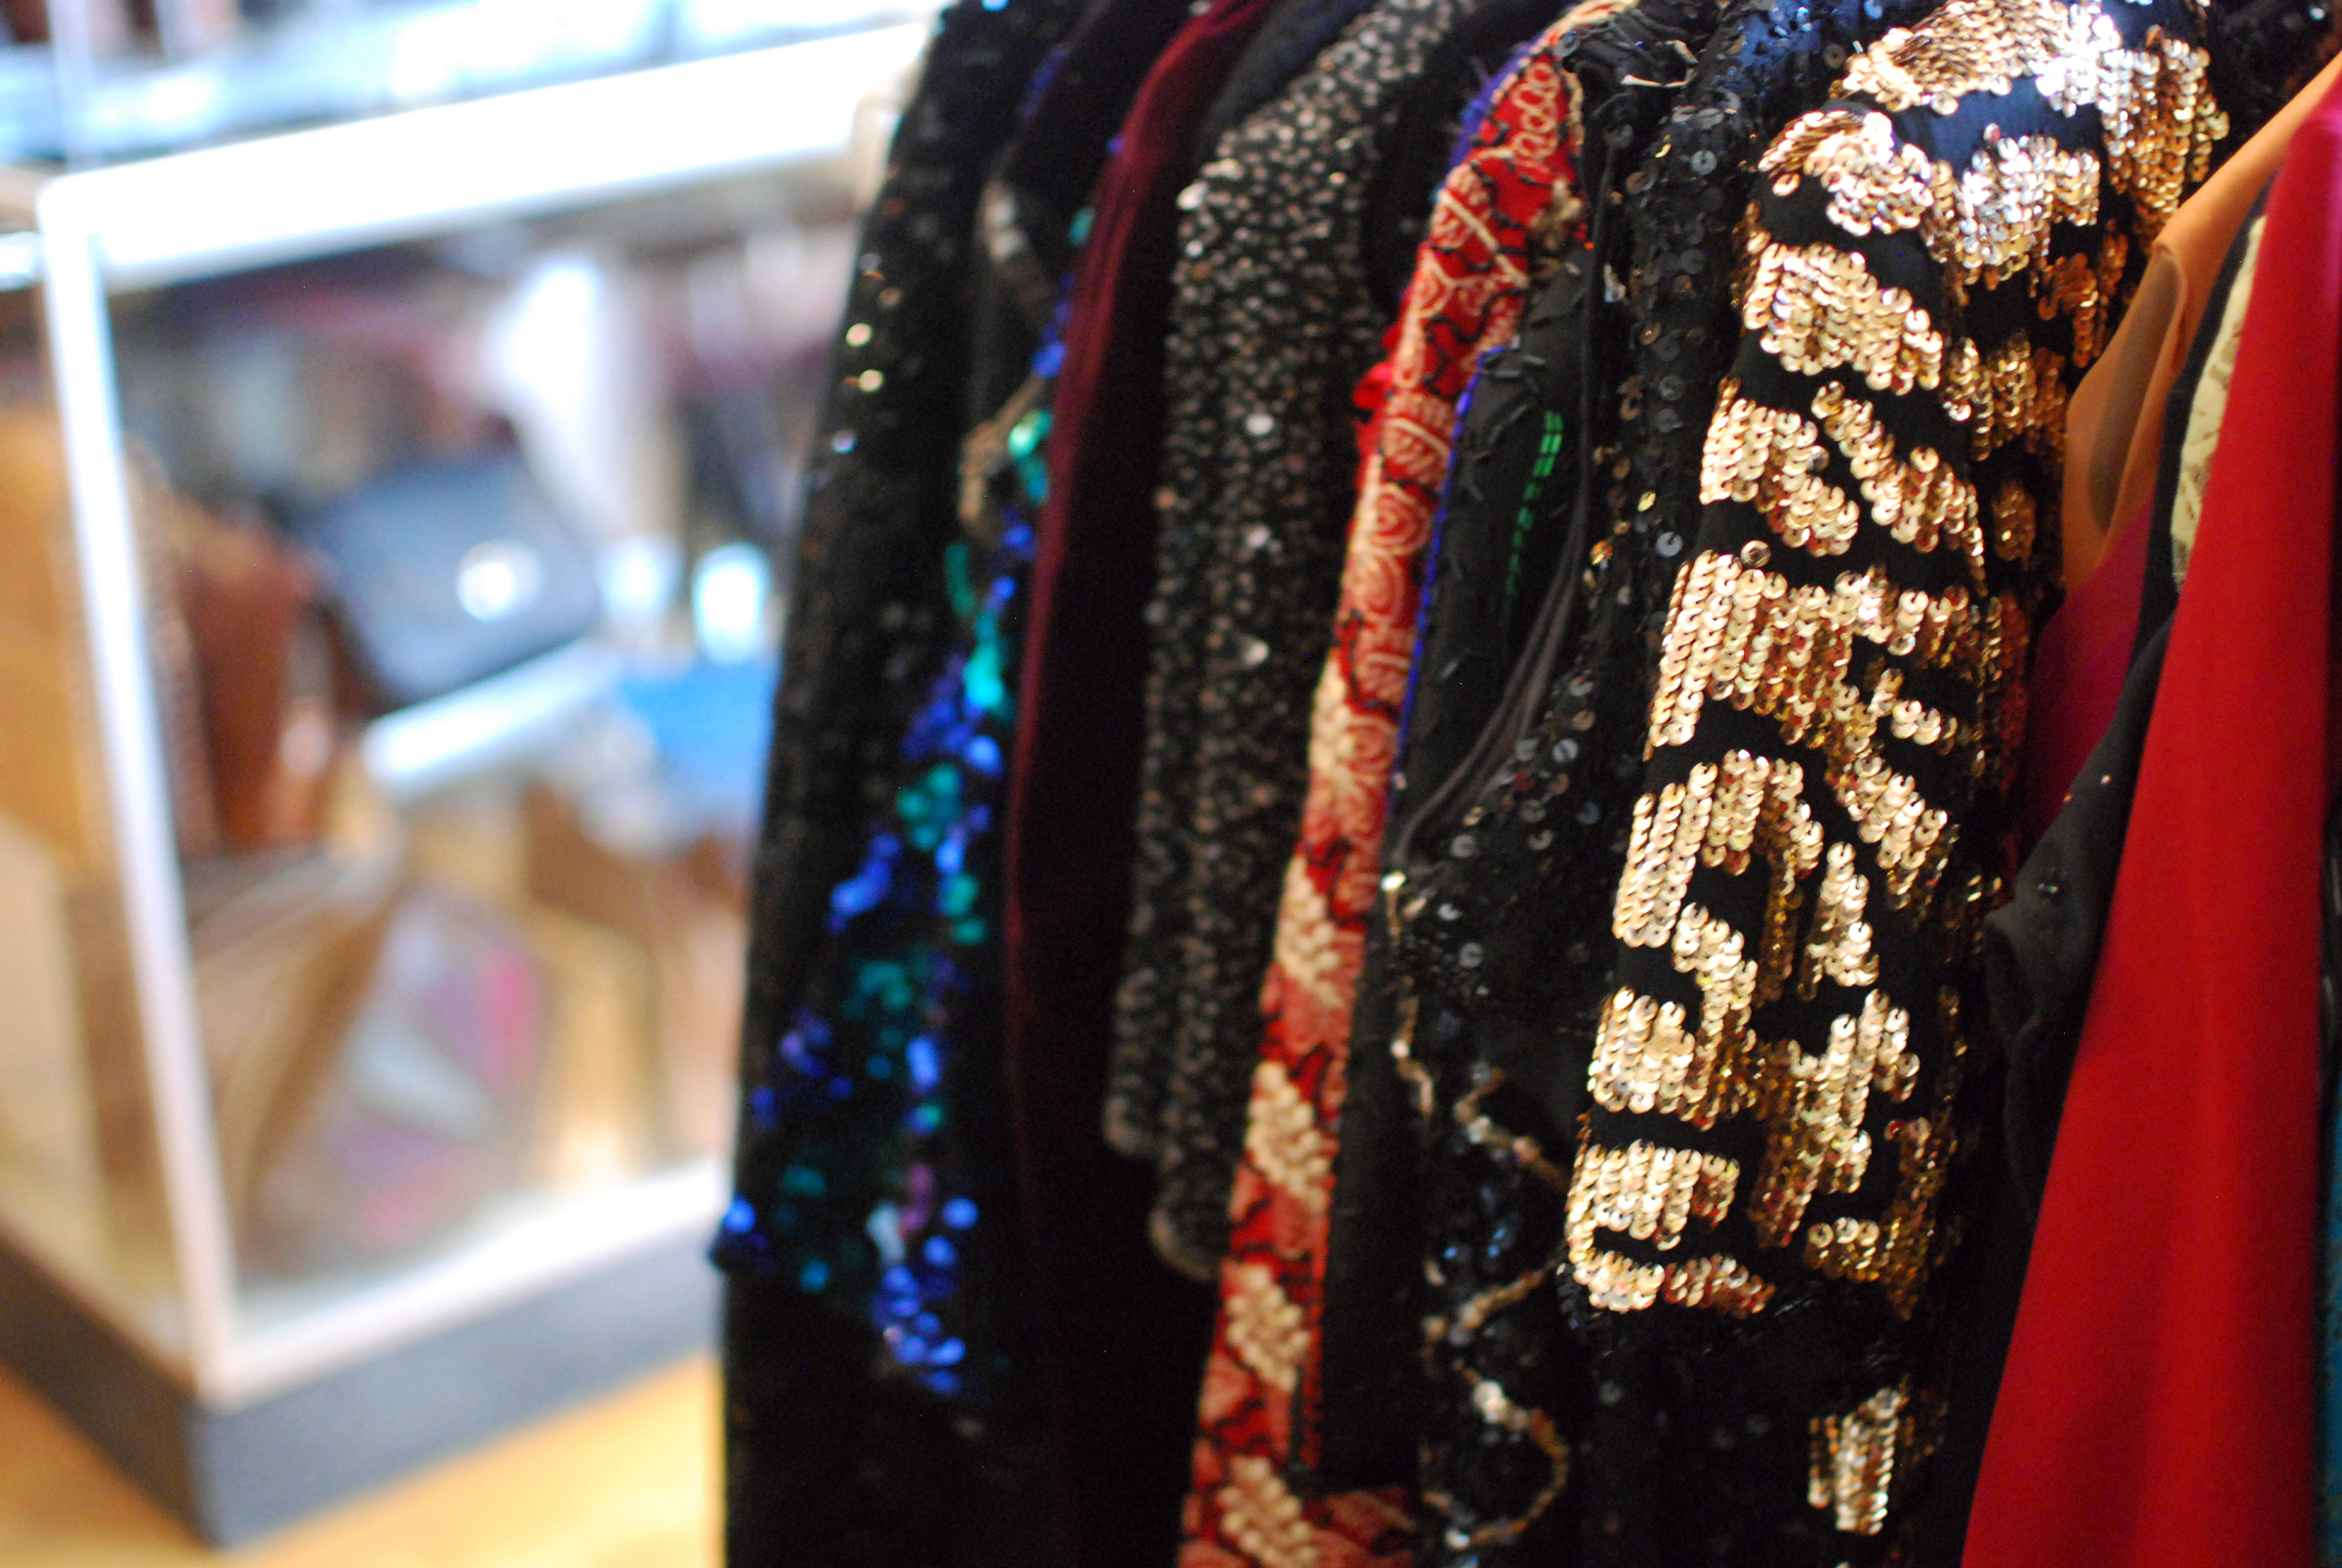 Vintage finds from IC Hair and Vintage